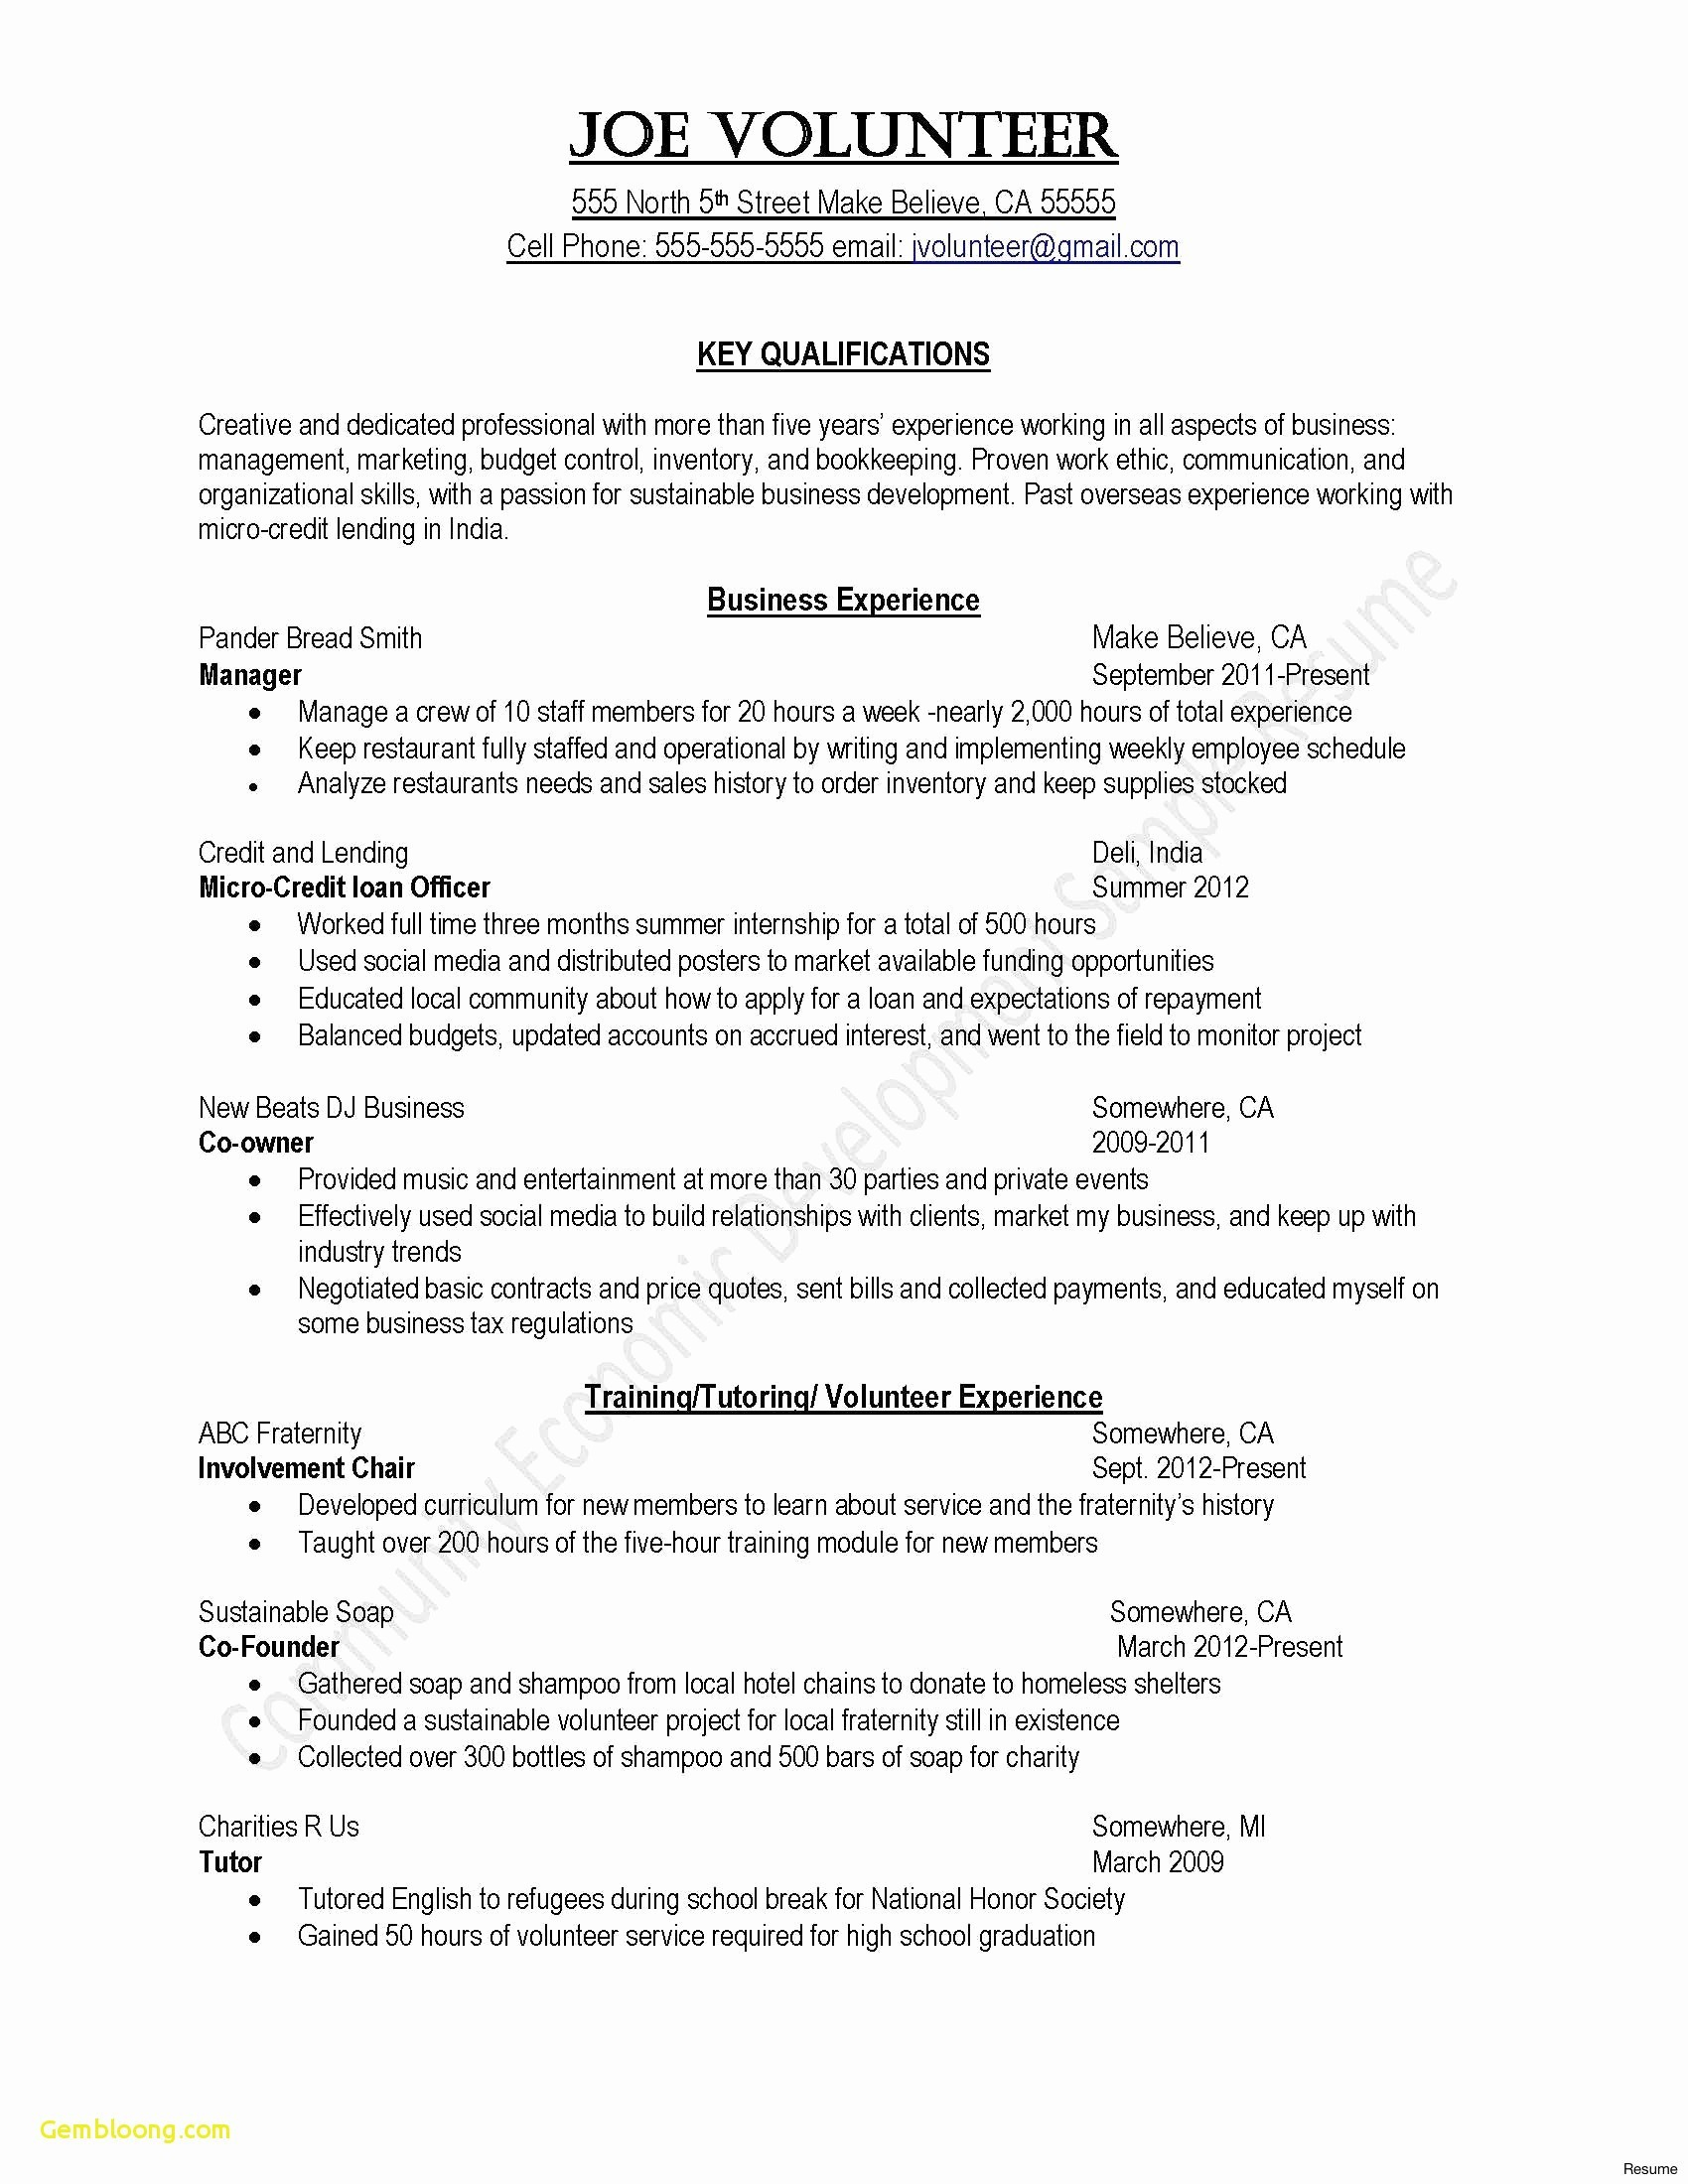 Bookkeeper Job Description for Resume - Example Cover Letter for Resume Awesome Sample Cover Letter for